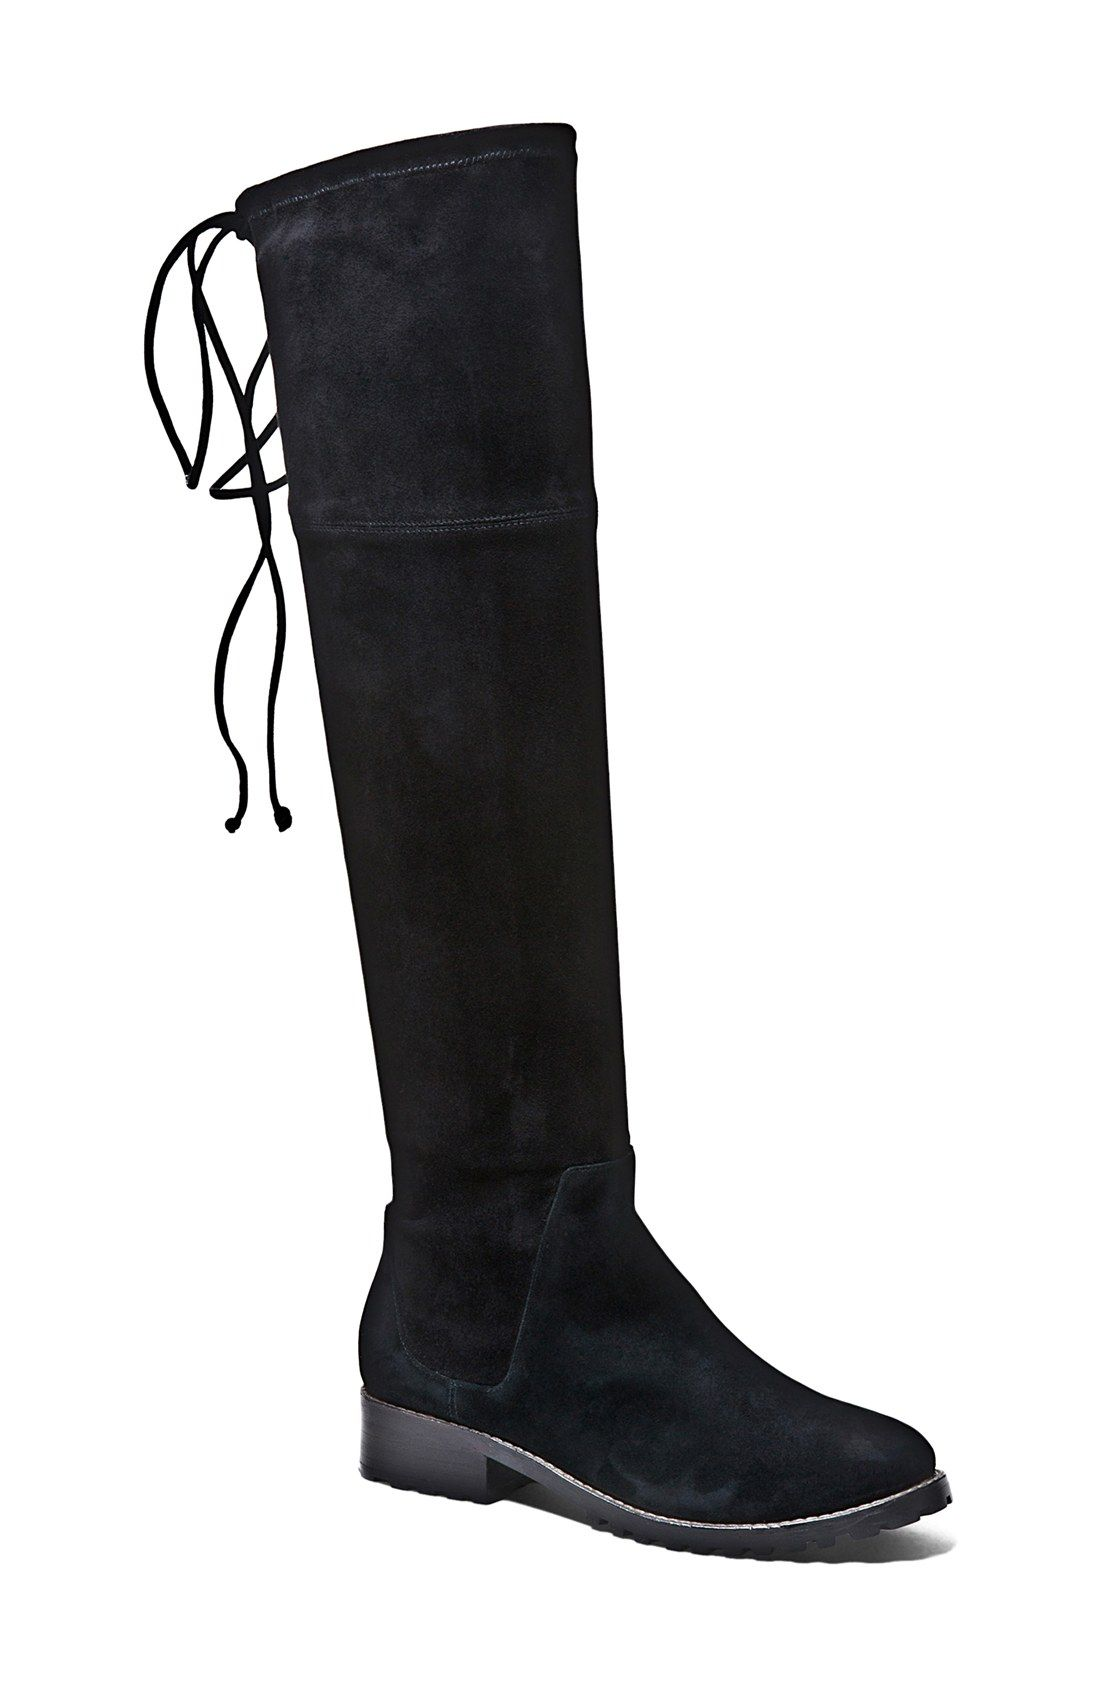 233e9833a94 Blondo 'Snow' Over the Knee Waterproof Boot (Women) | Celebrate ...